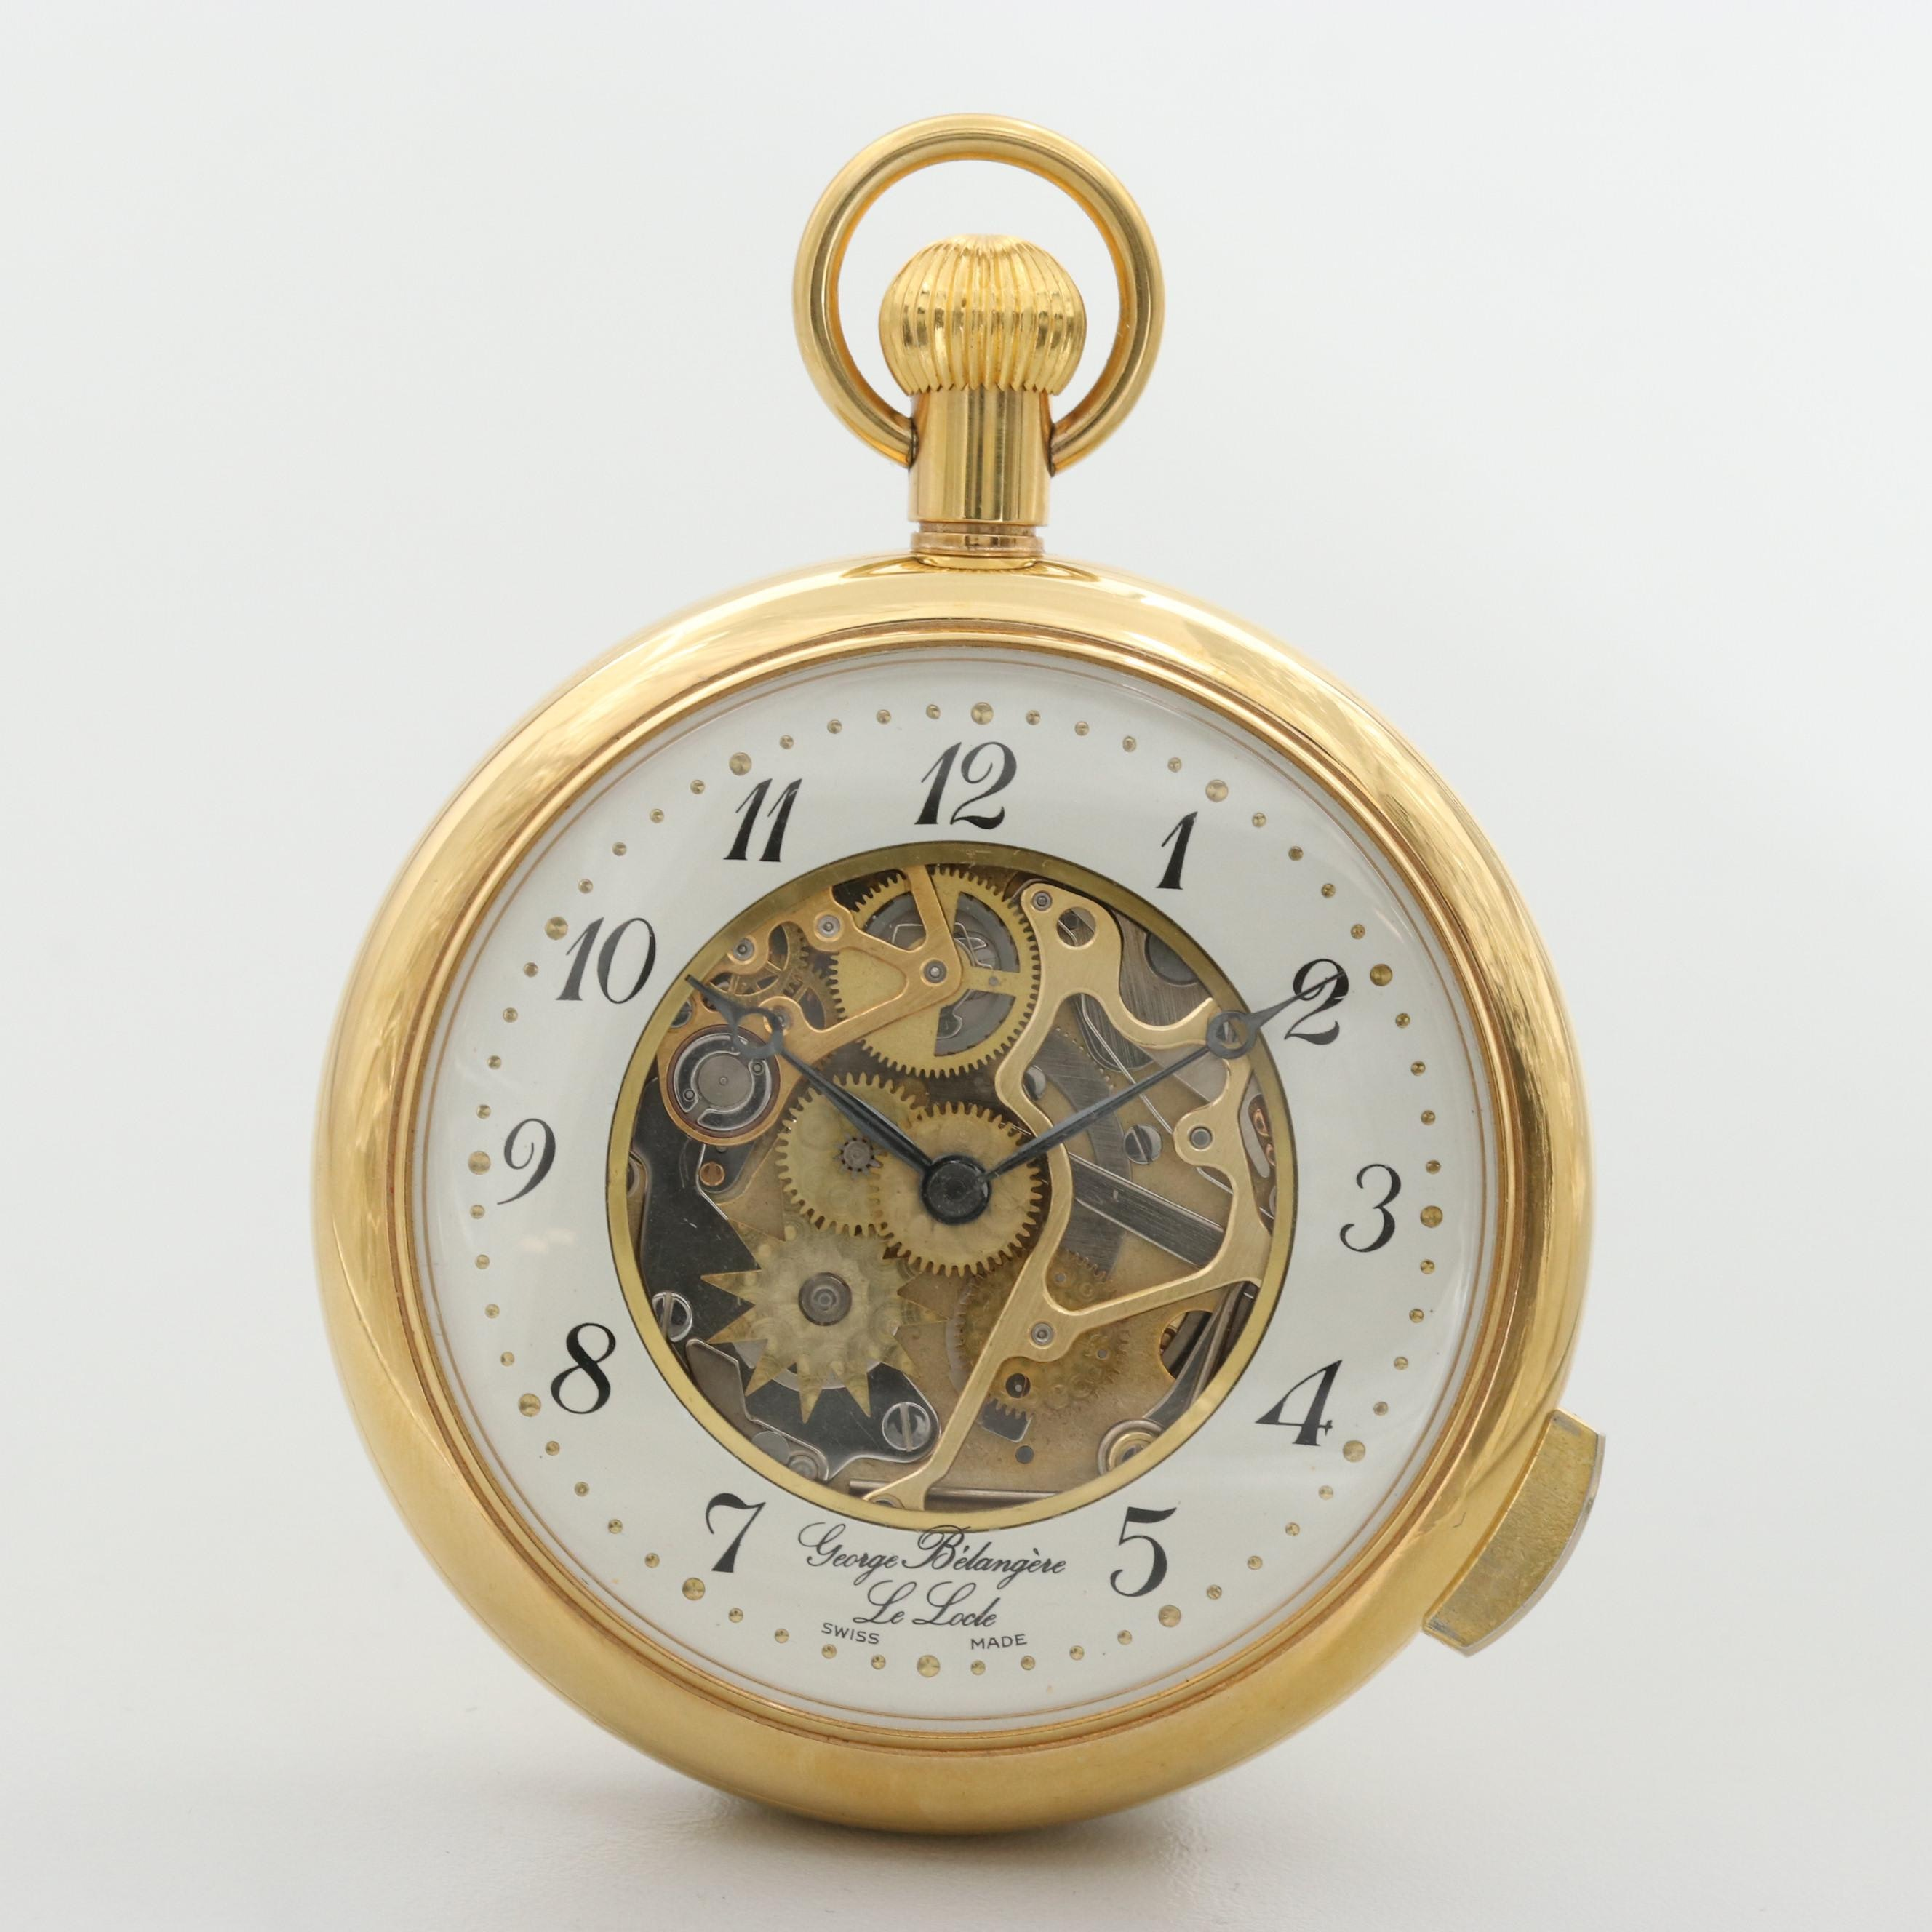 Swiss Five Minute Repeater Pocket Watch With Partial Exhibition Front